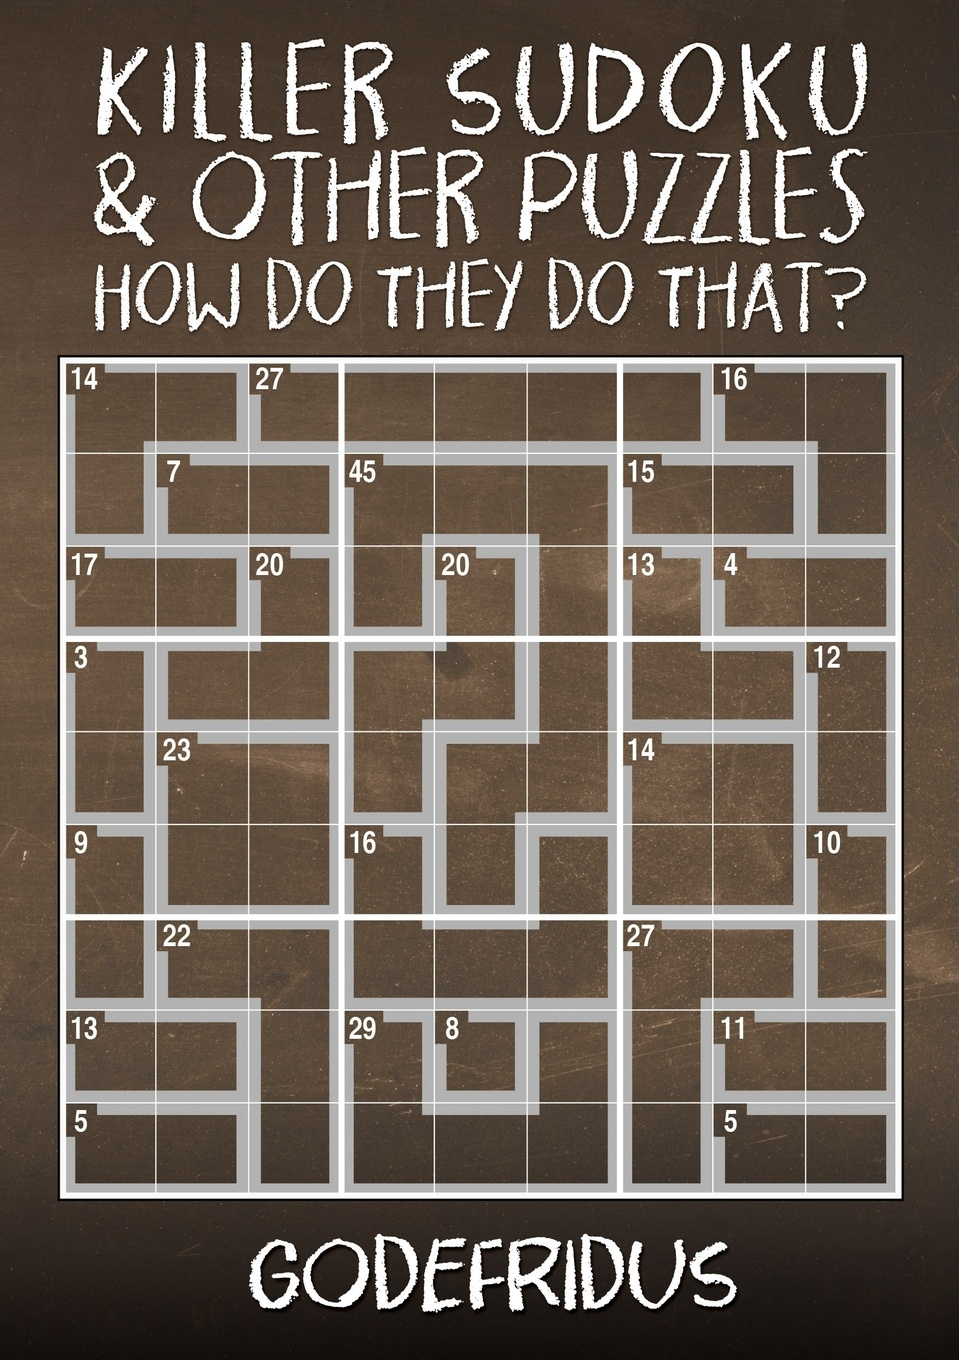 Godefridus Killer Sudoku and Other Puzzles - How Do They Do That? the canterbury puzzles